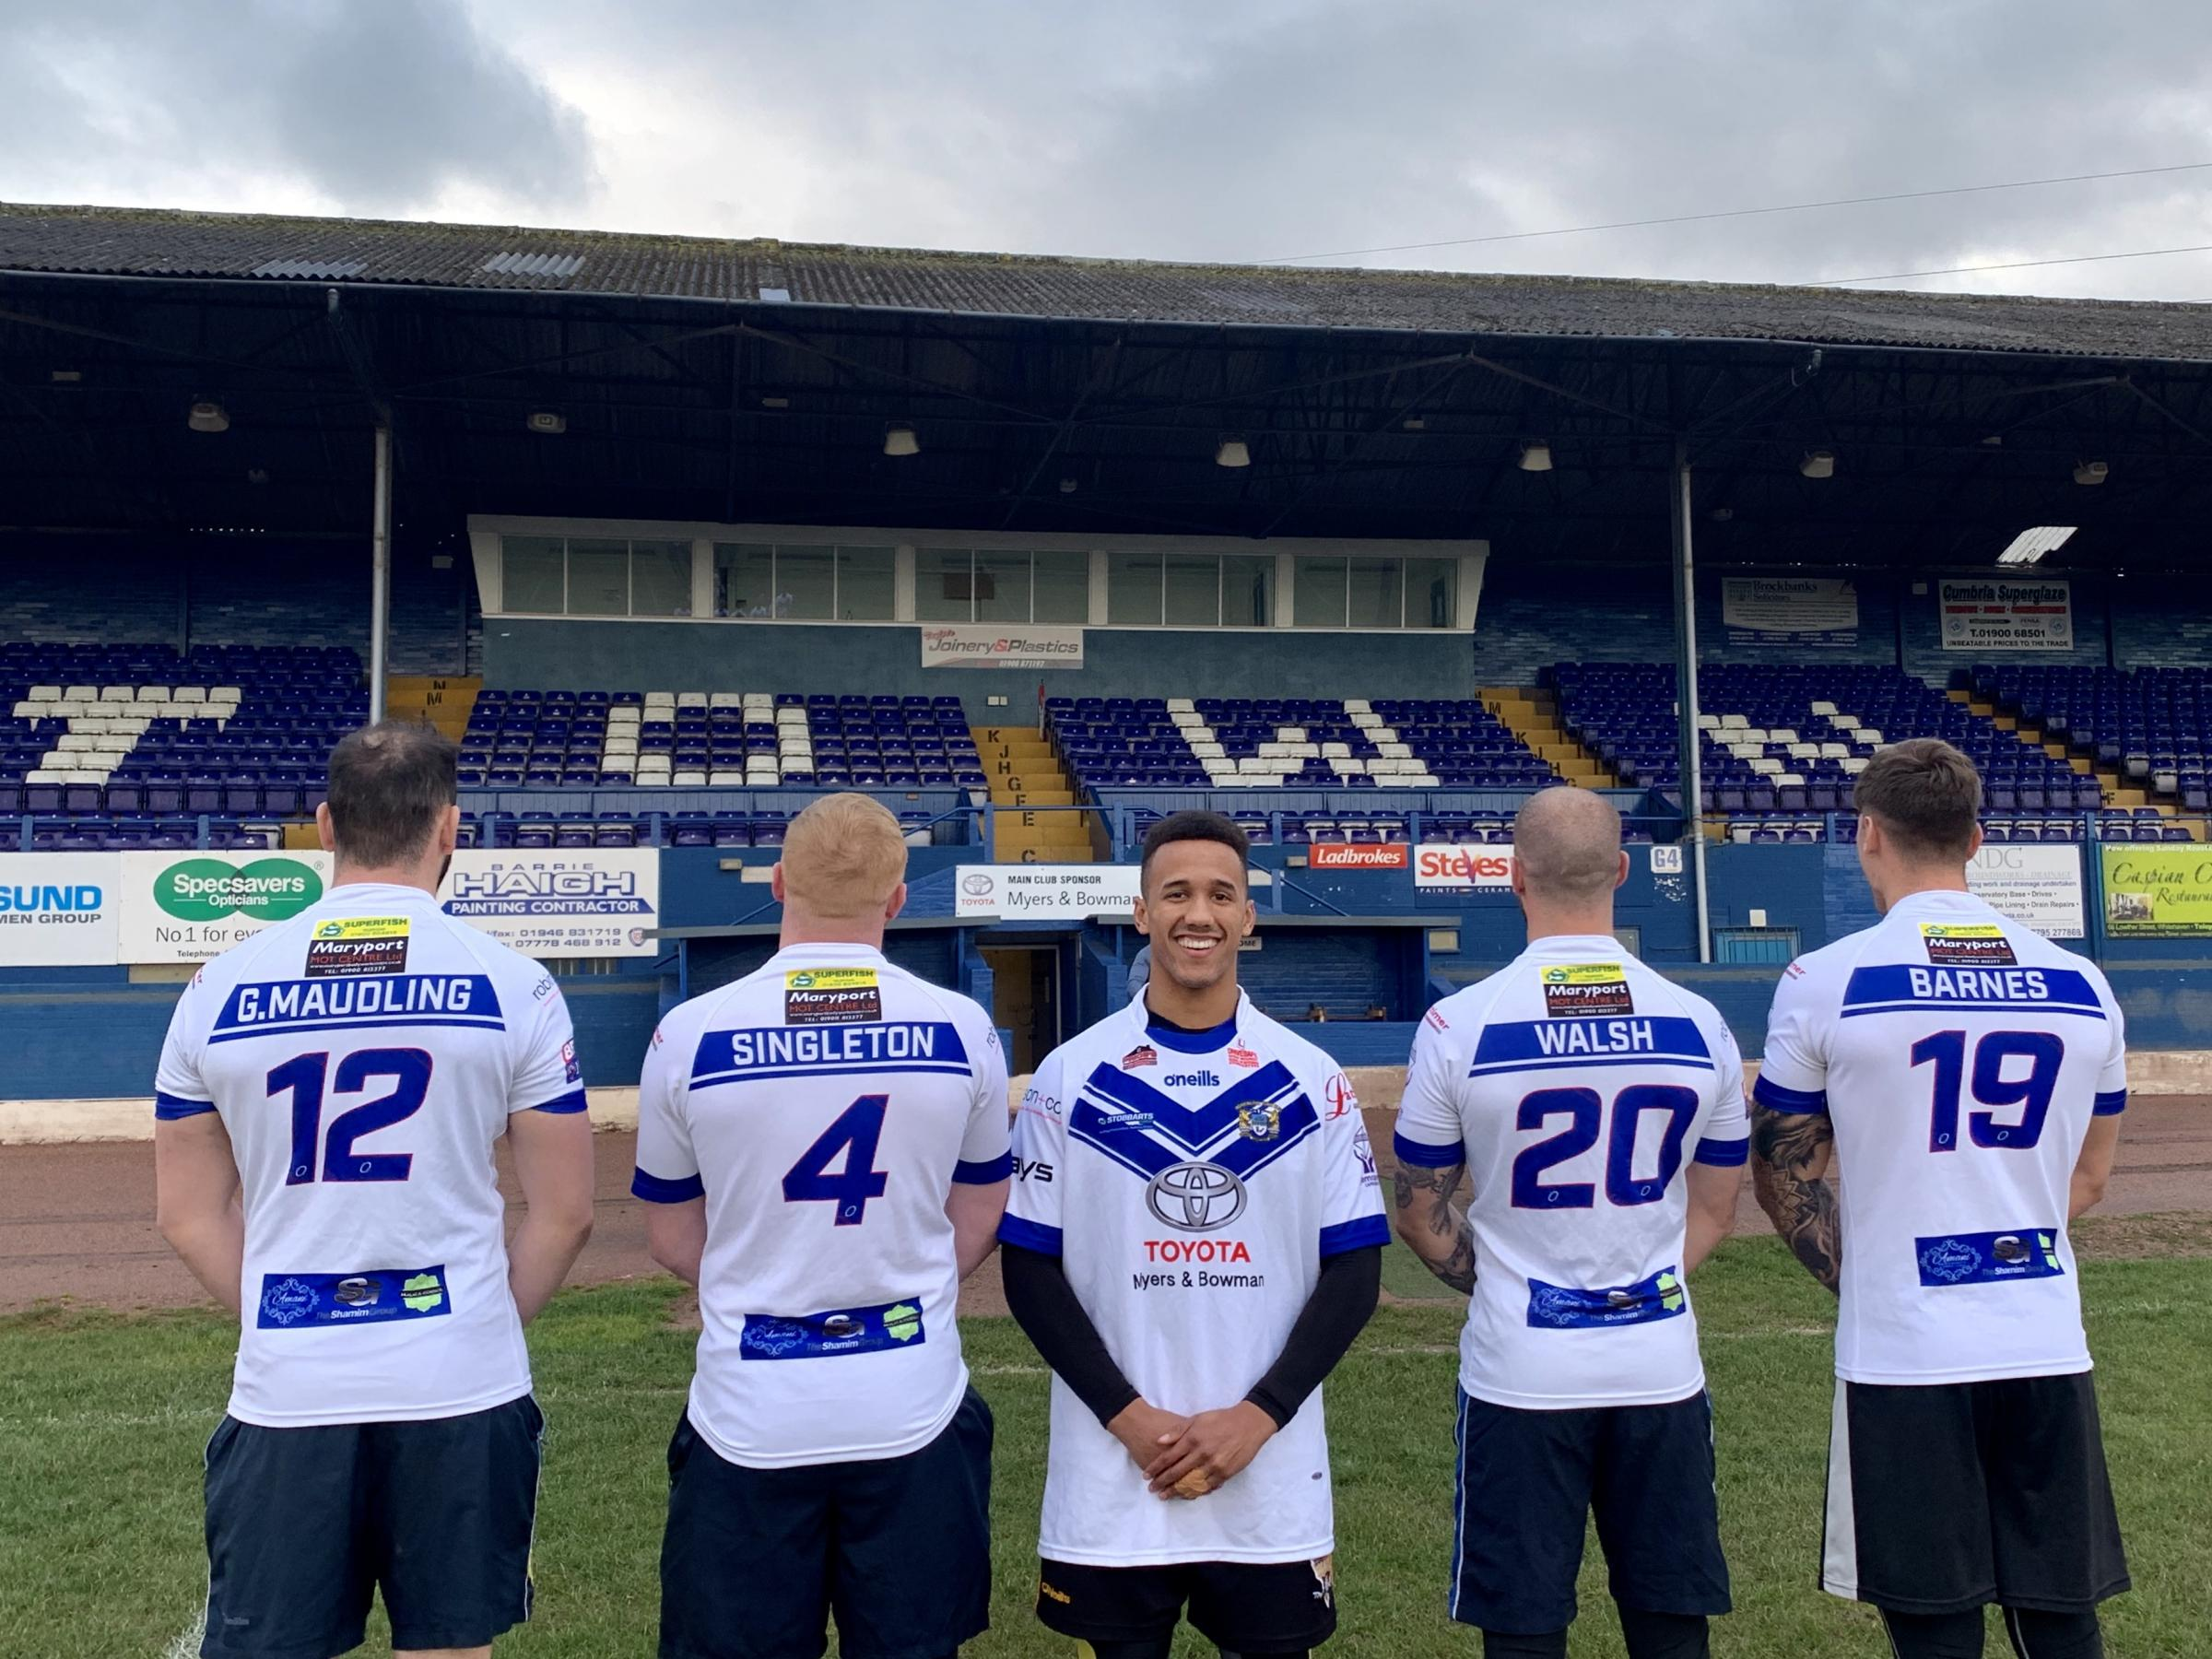 FRIDAY-NIGHT DATE: All roads lead to Headingley on the date displayed by the Workington Town players ahead of their trip to take on Leeds Rhinos